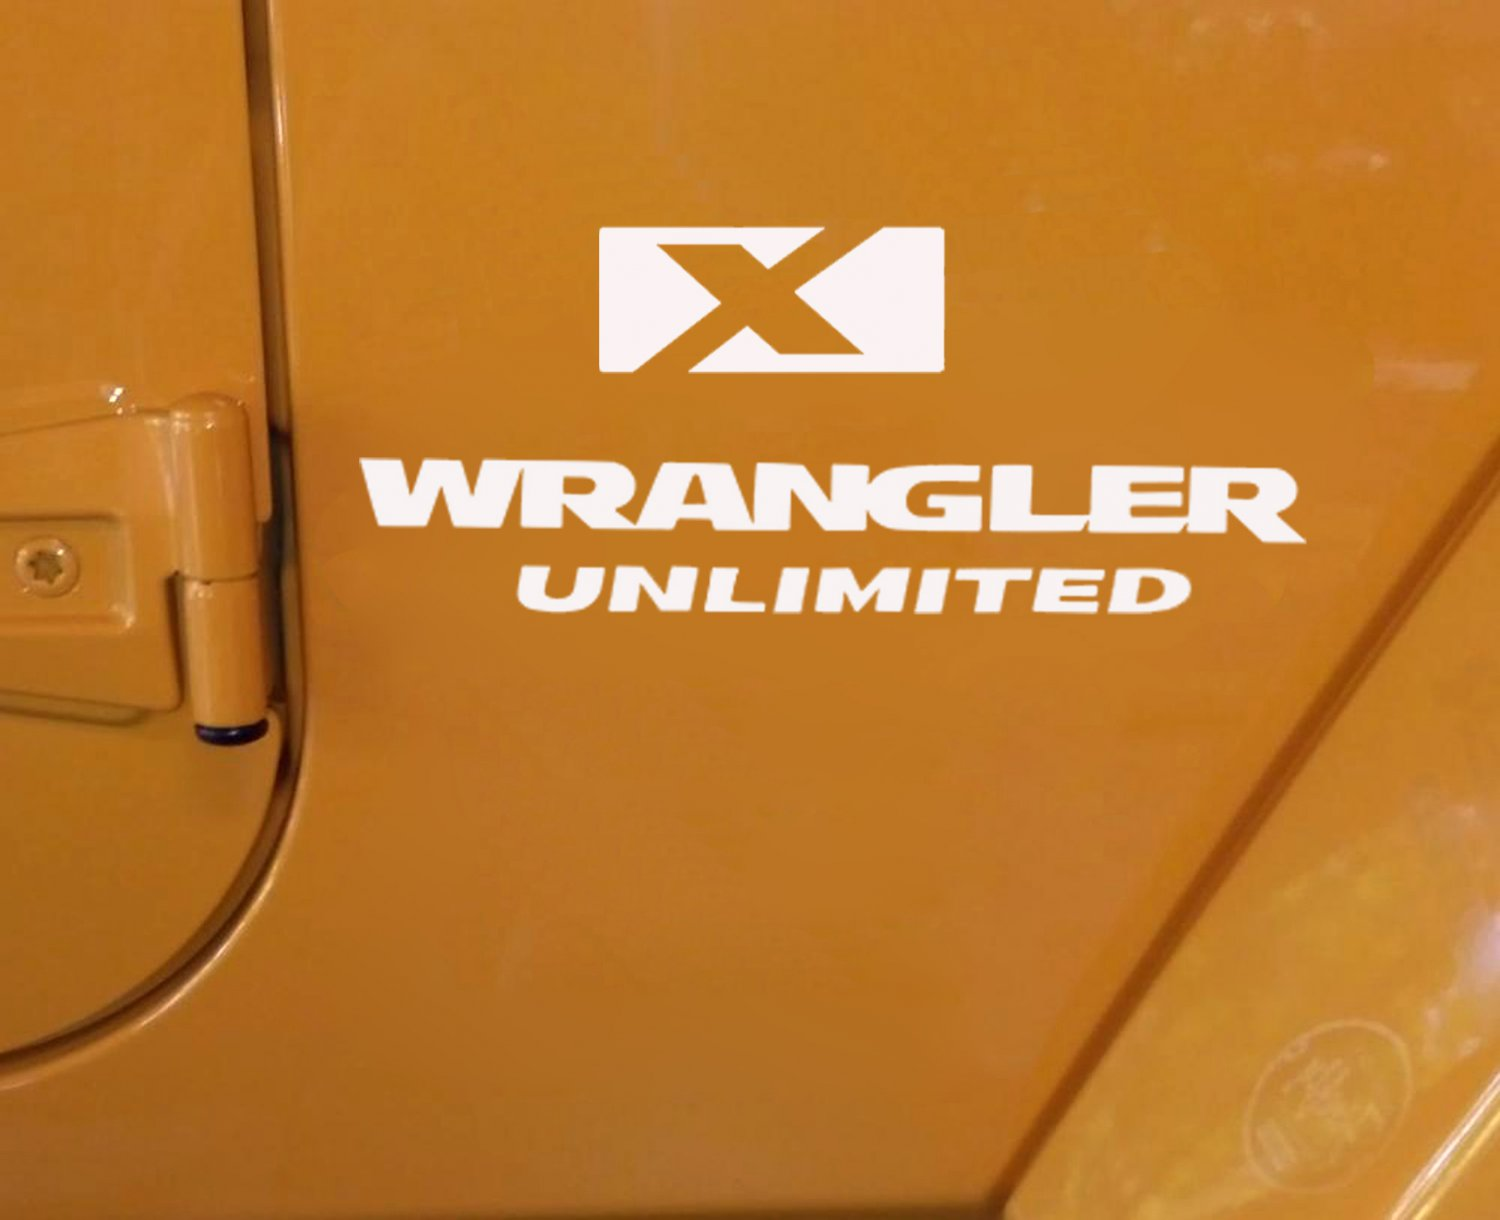 2 of Jeep wrangler unlimited X Decal Stickers Logo white color